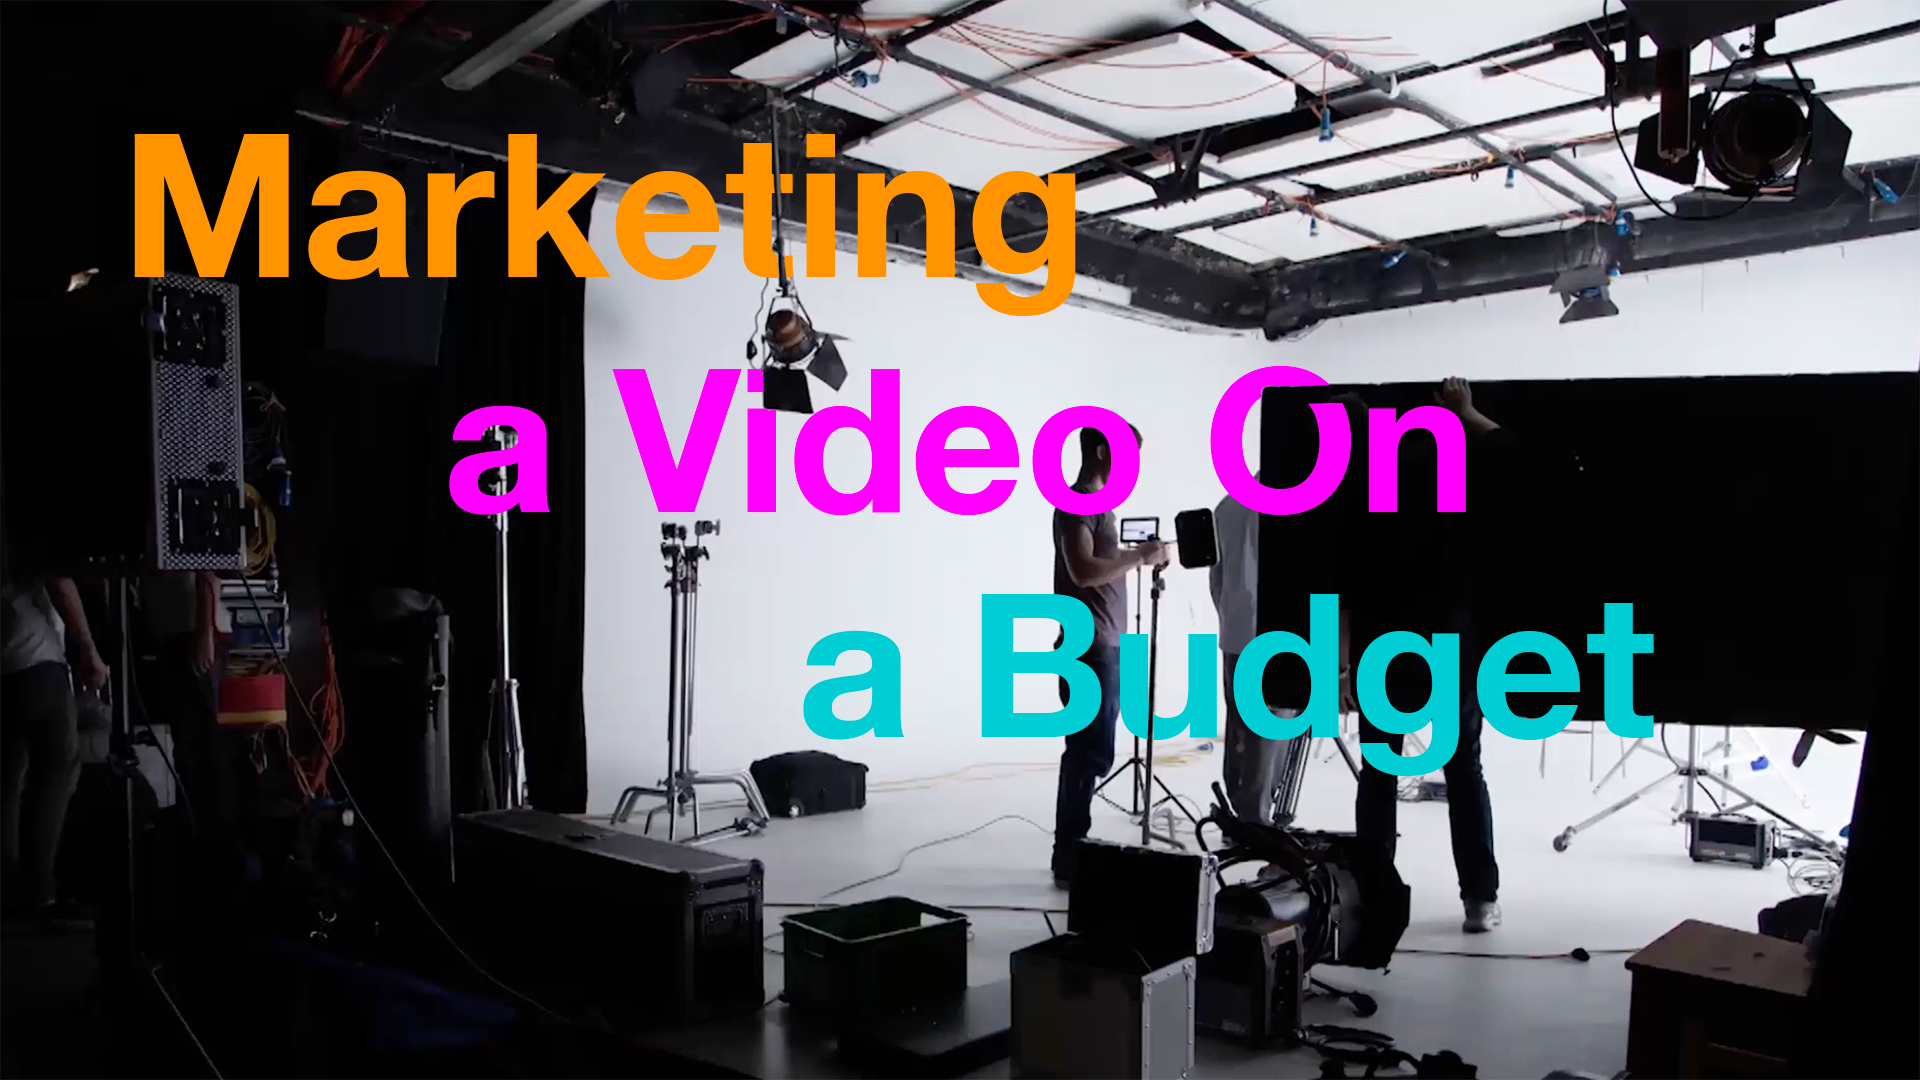 Marketing a Video On a Budget